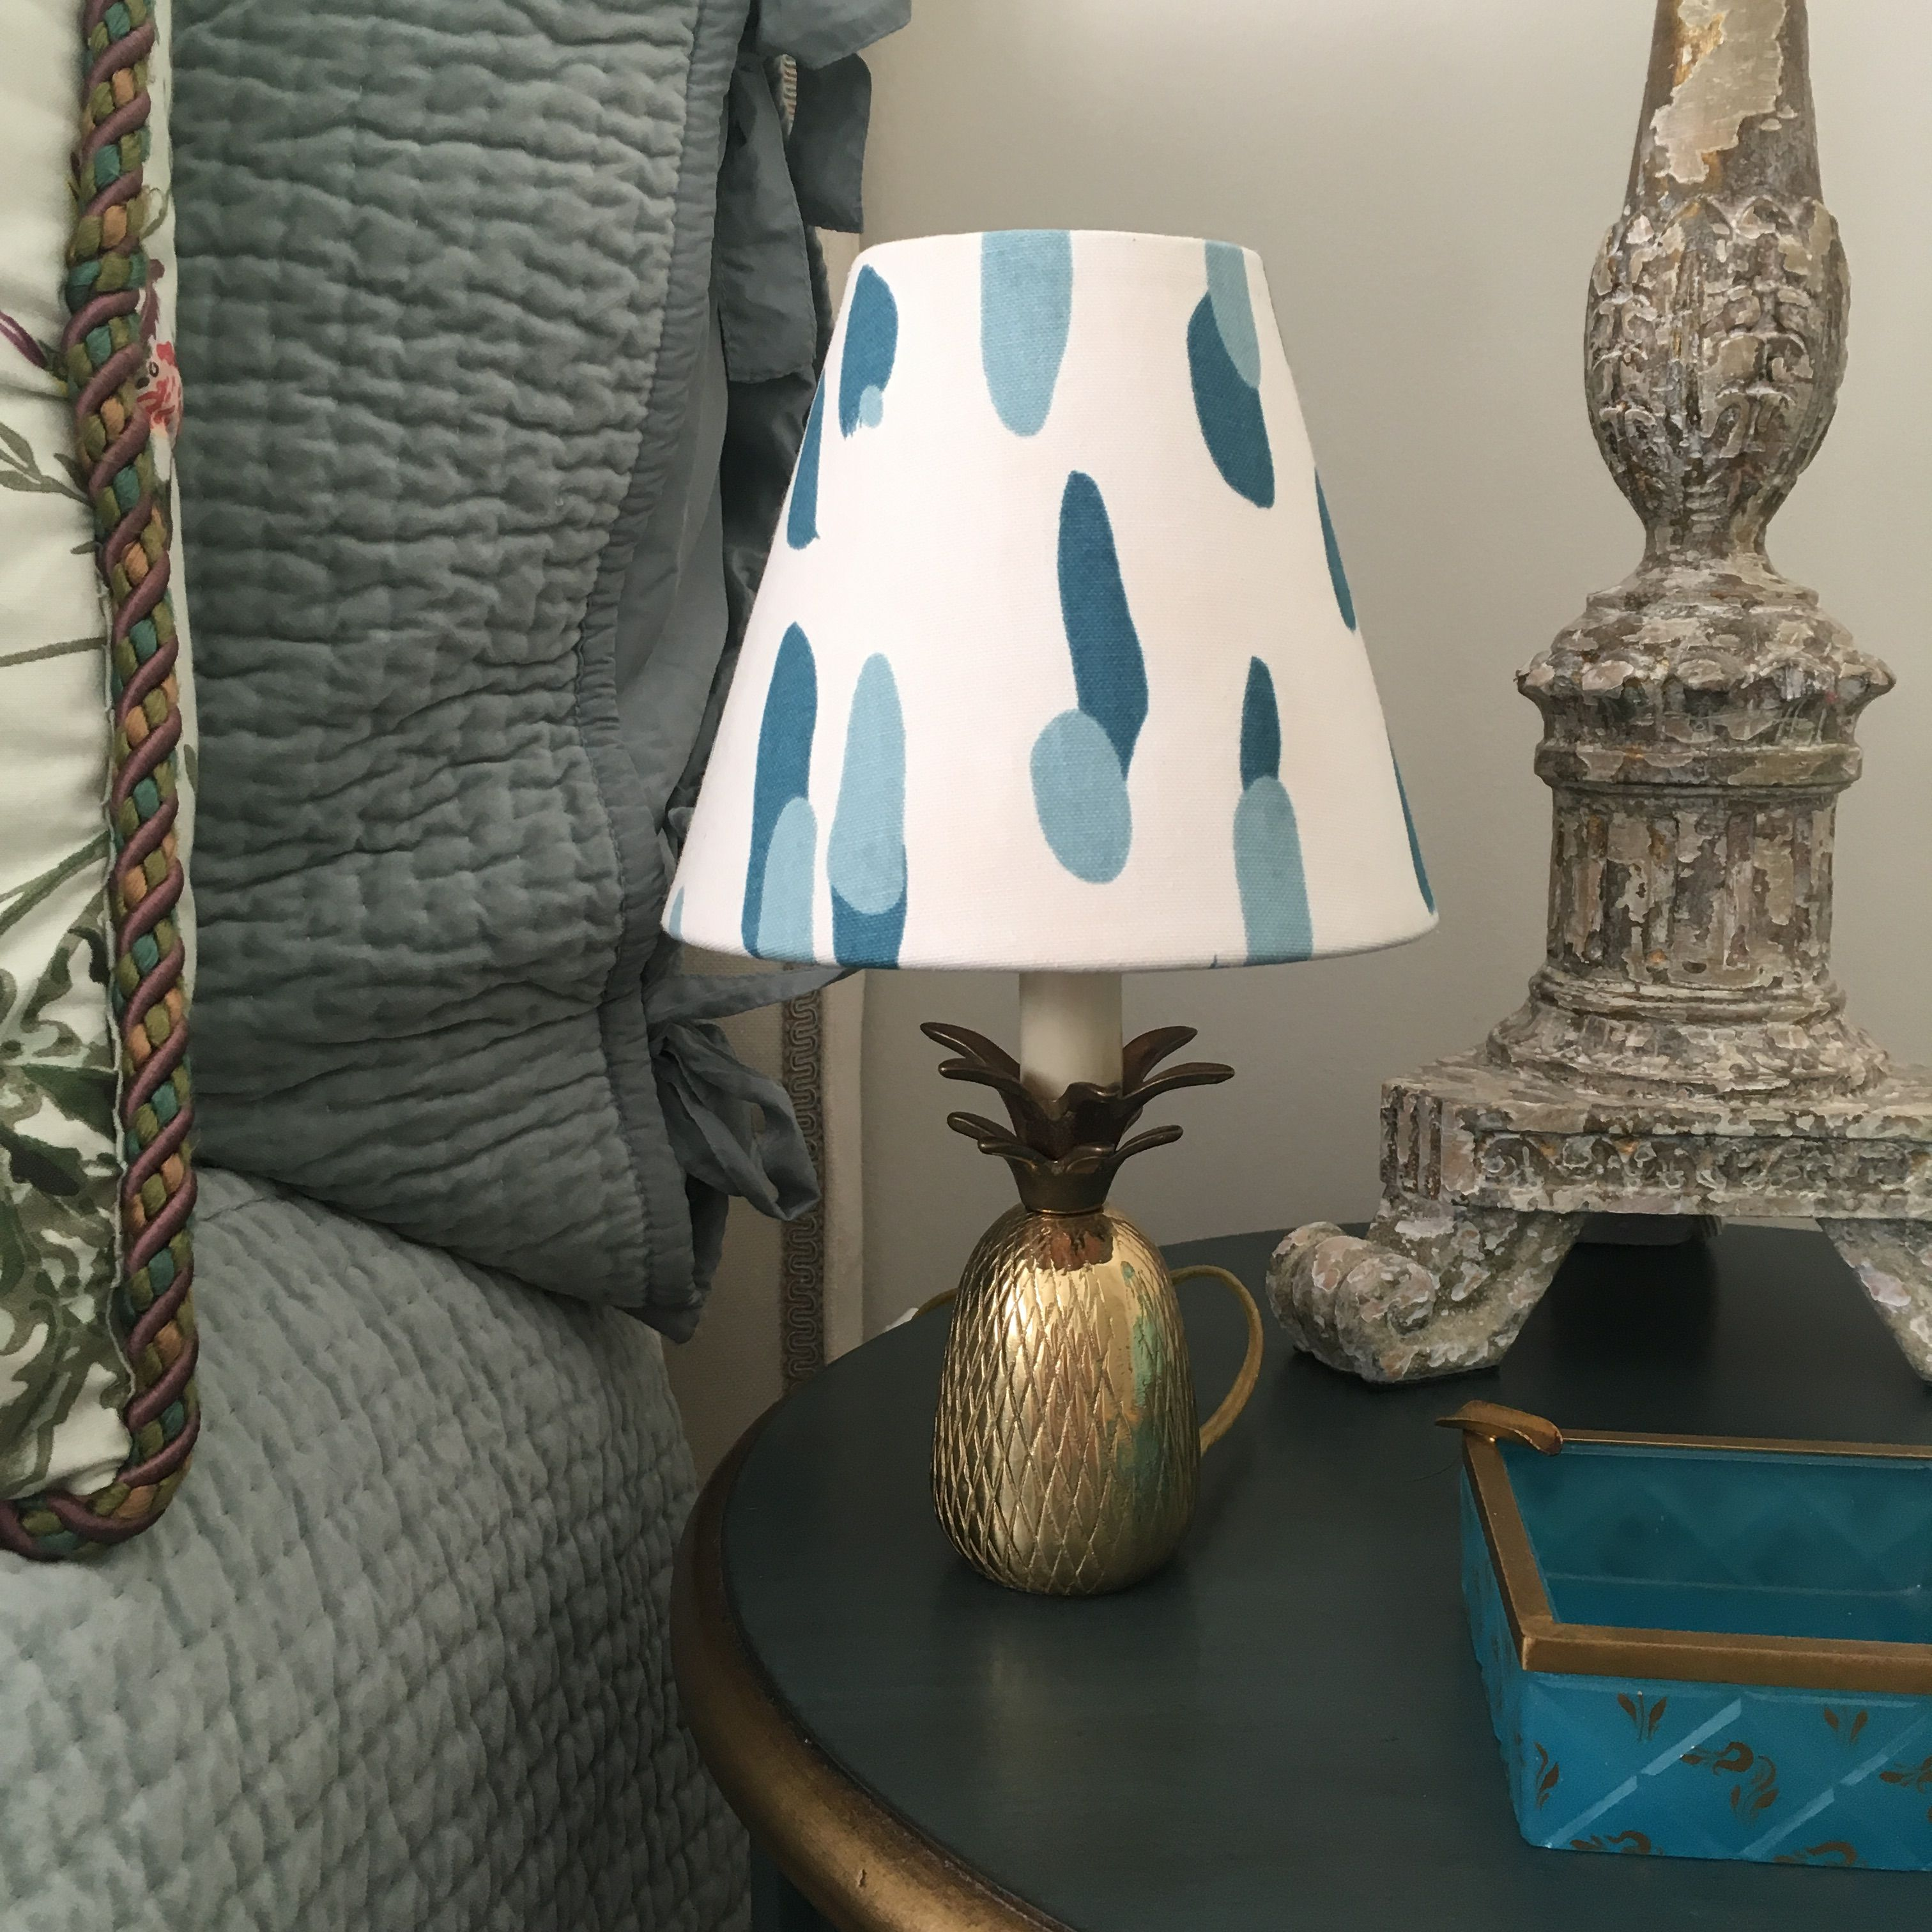 Marport Ceramic Table Lamp Temple Webster Lamp Blue Lamp Shade